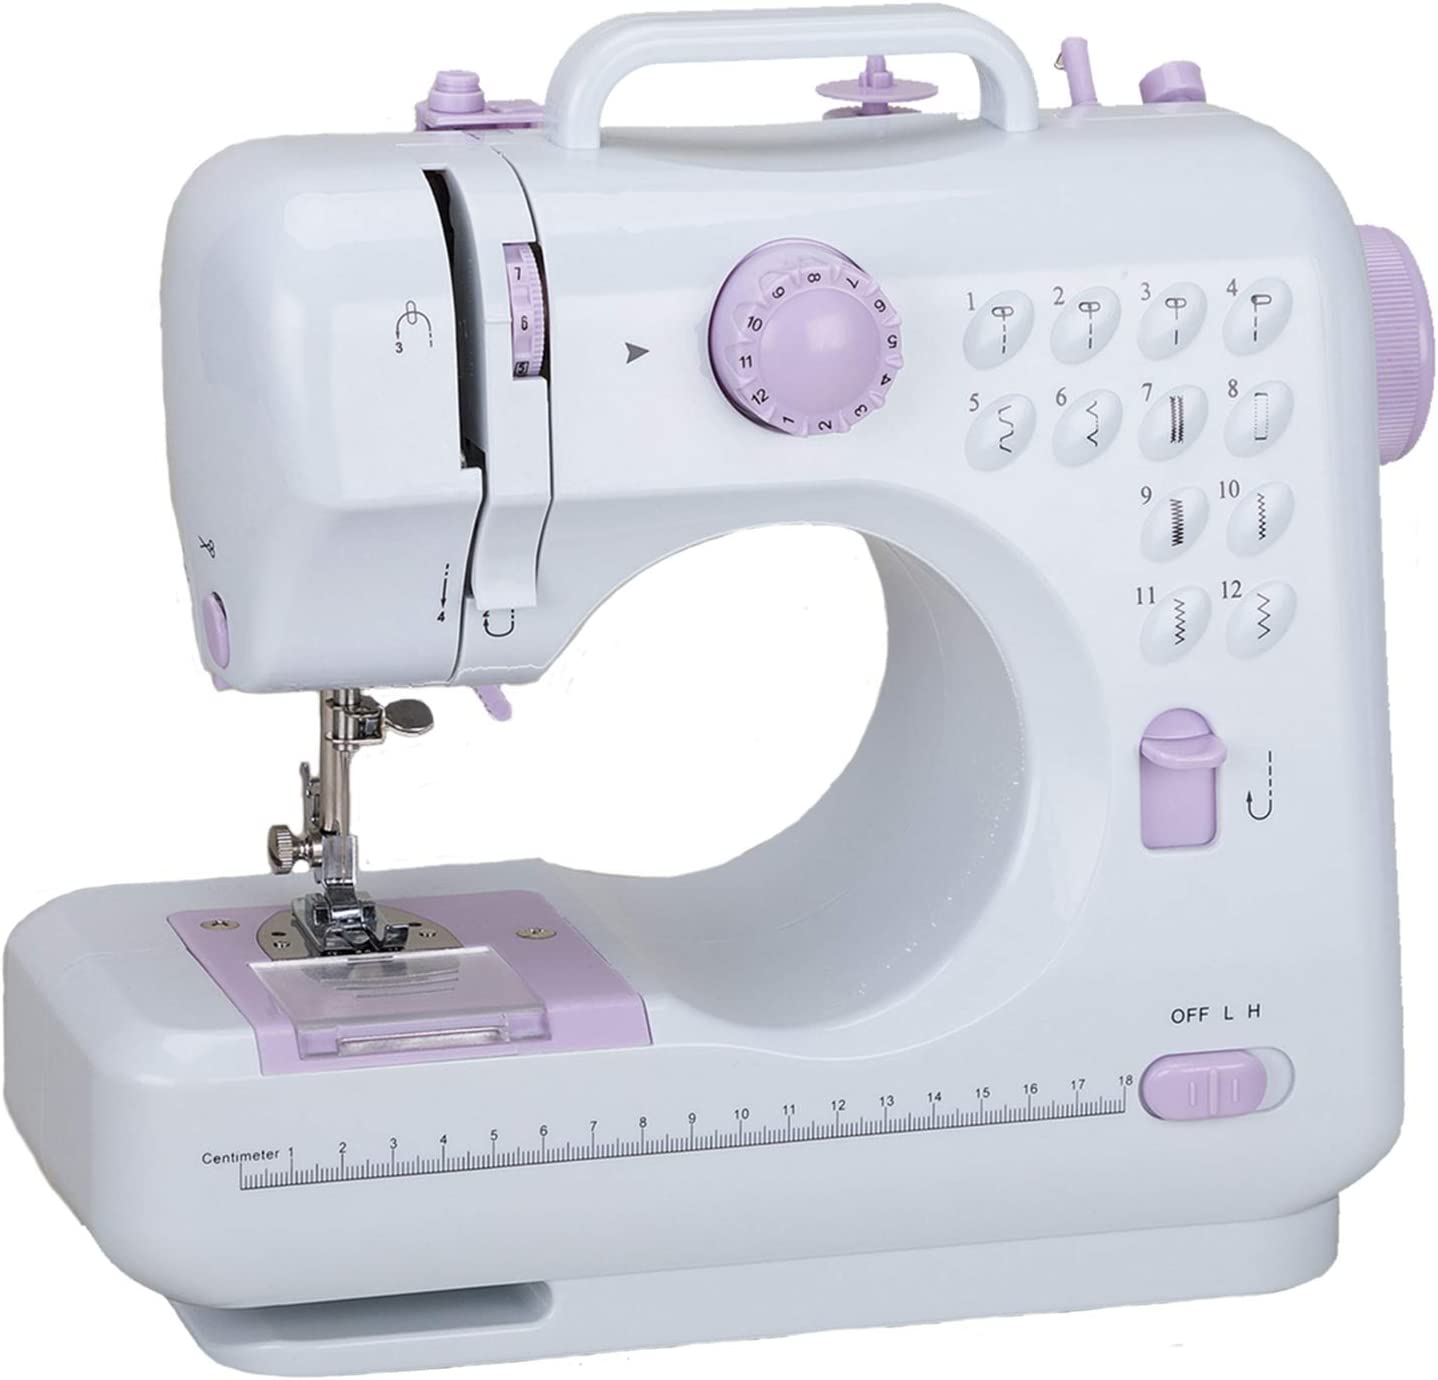 Electric Lightweight Sewing Machine with 12 Floral Stitch Household Sewing Machine for Beginners Multifunction Tailor Machine for Home